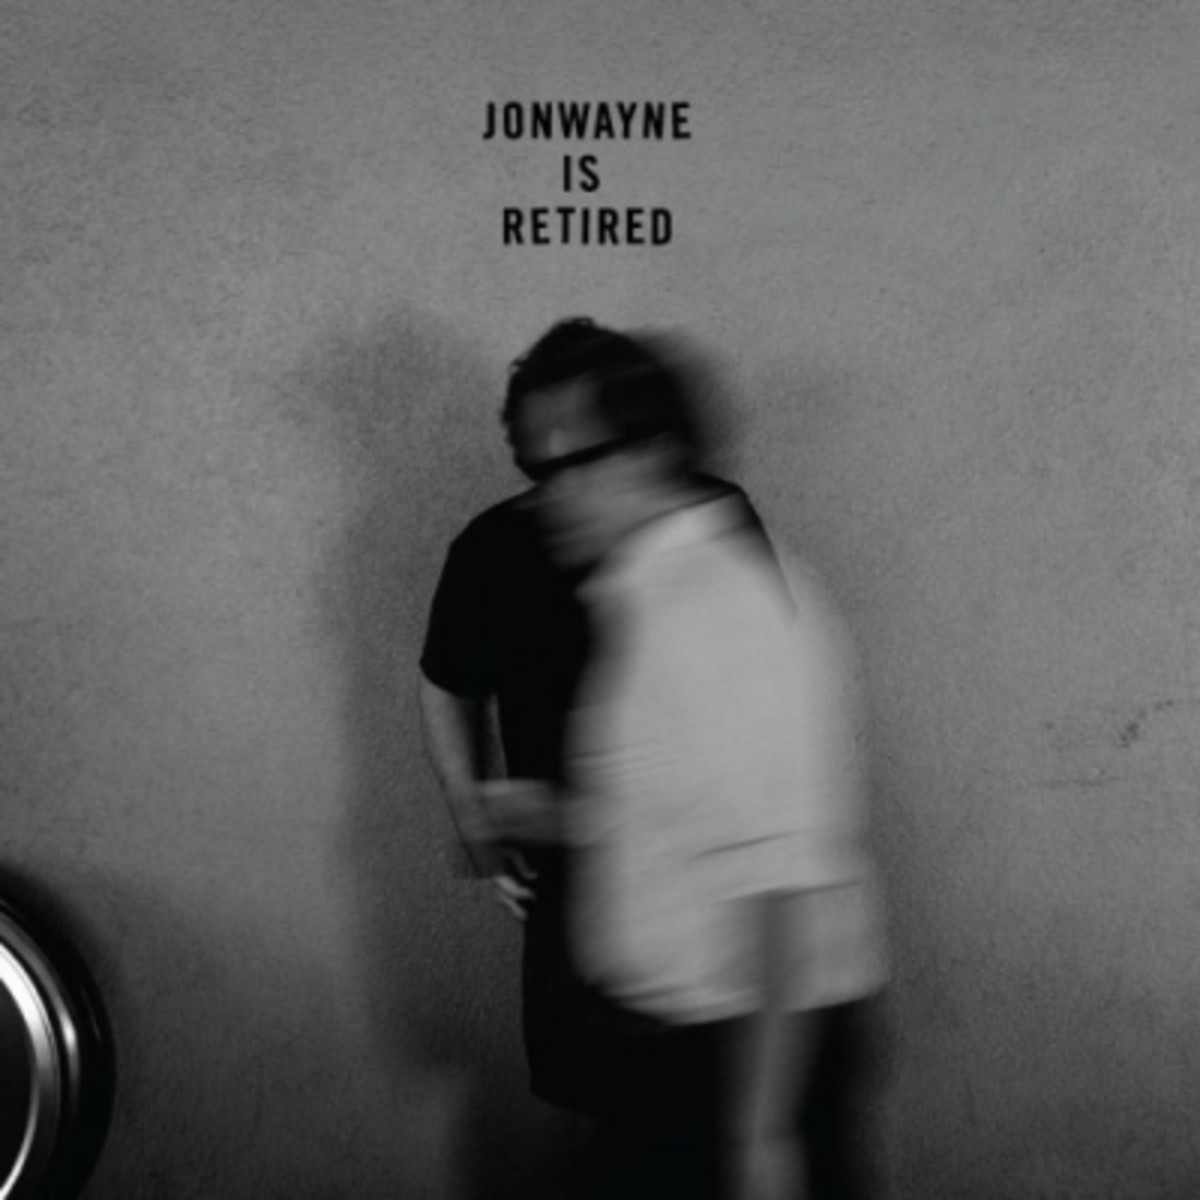 jonwayne-is-retired.jpg